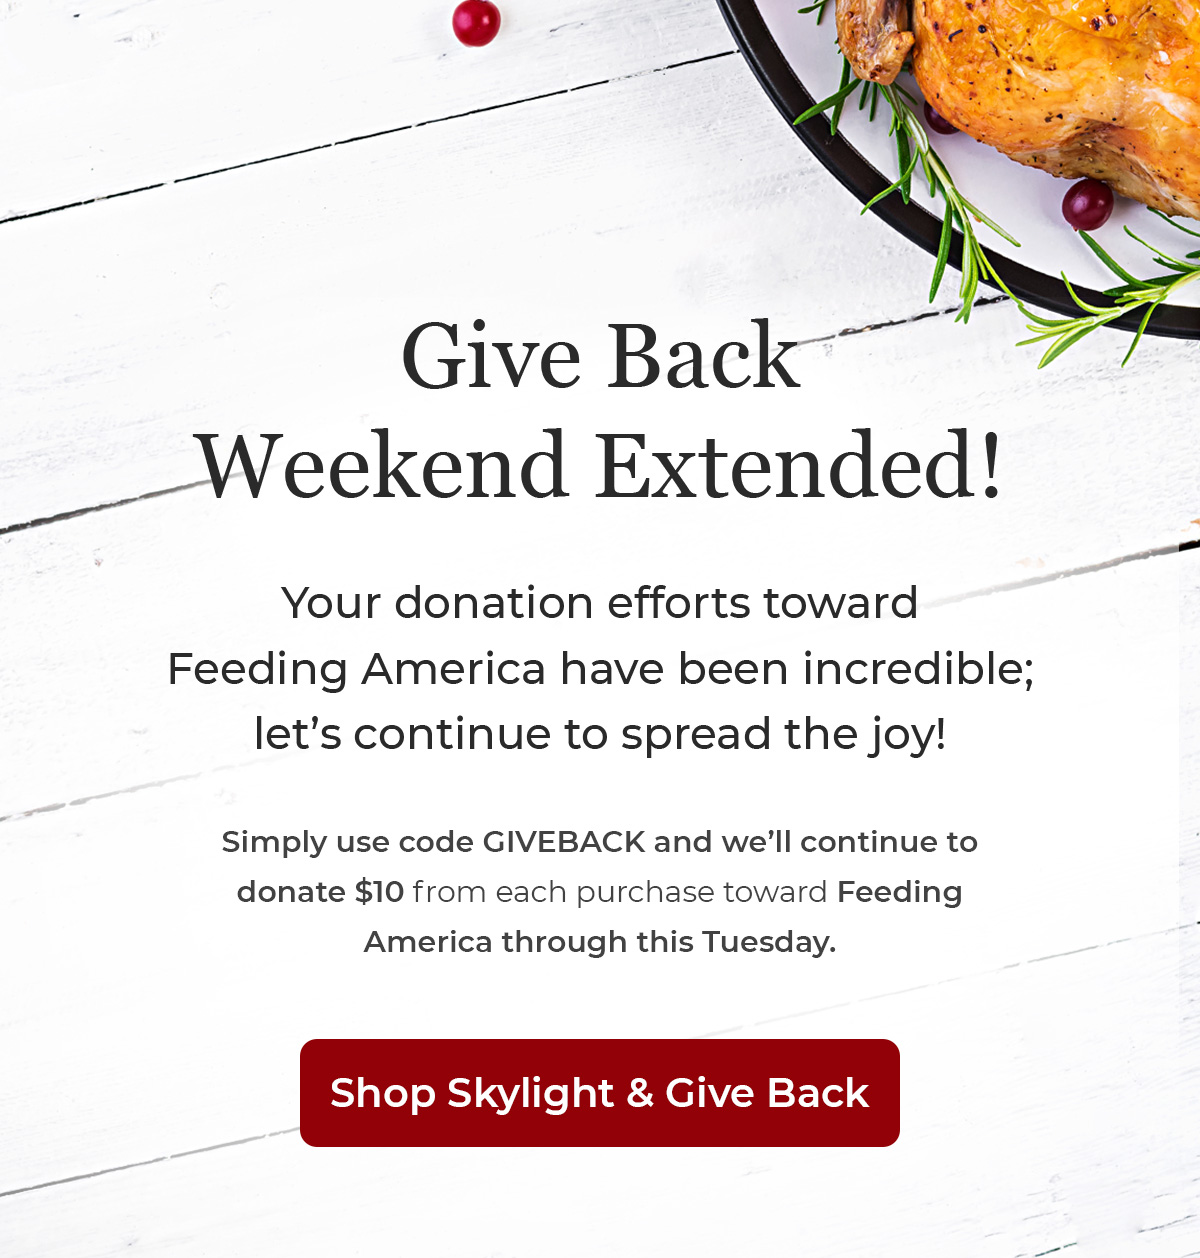 GIVE BACK WEEKEND EXTENDED! | Let's continue to spread the joy | Use code GIVEBACK and we'll continue donating $10 toward Feeding America through Tuesday | SHOP SKYLIGHT & GIVE BACK